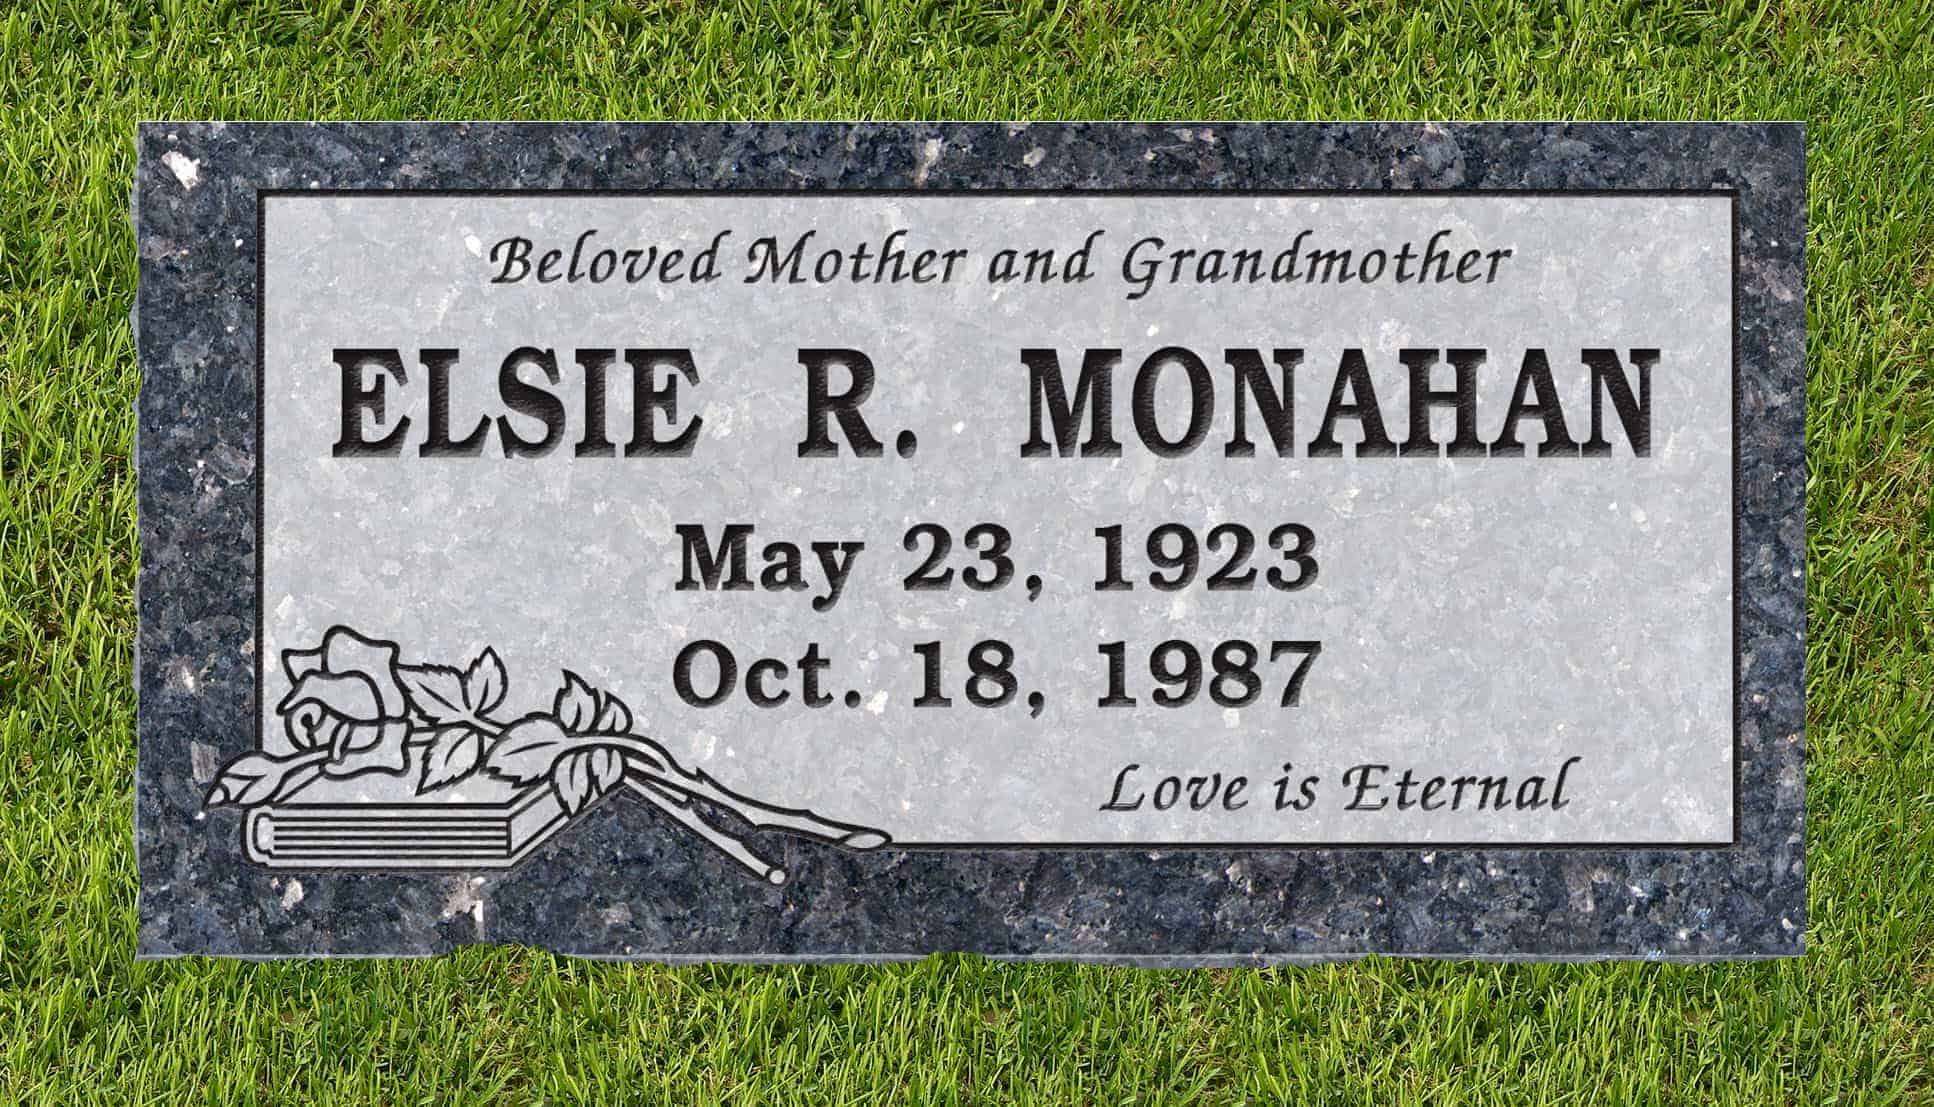 24inch_x_12inch_x_3inch_Flat_Granite_Headstone_in_Blue_Pearl_with_design_B-16_installed_in_ground